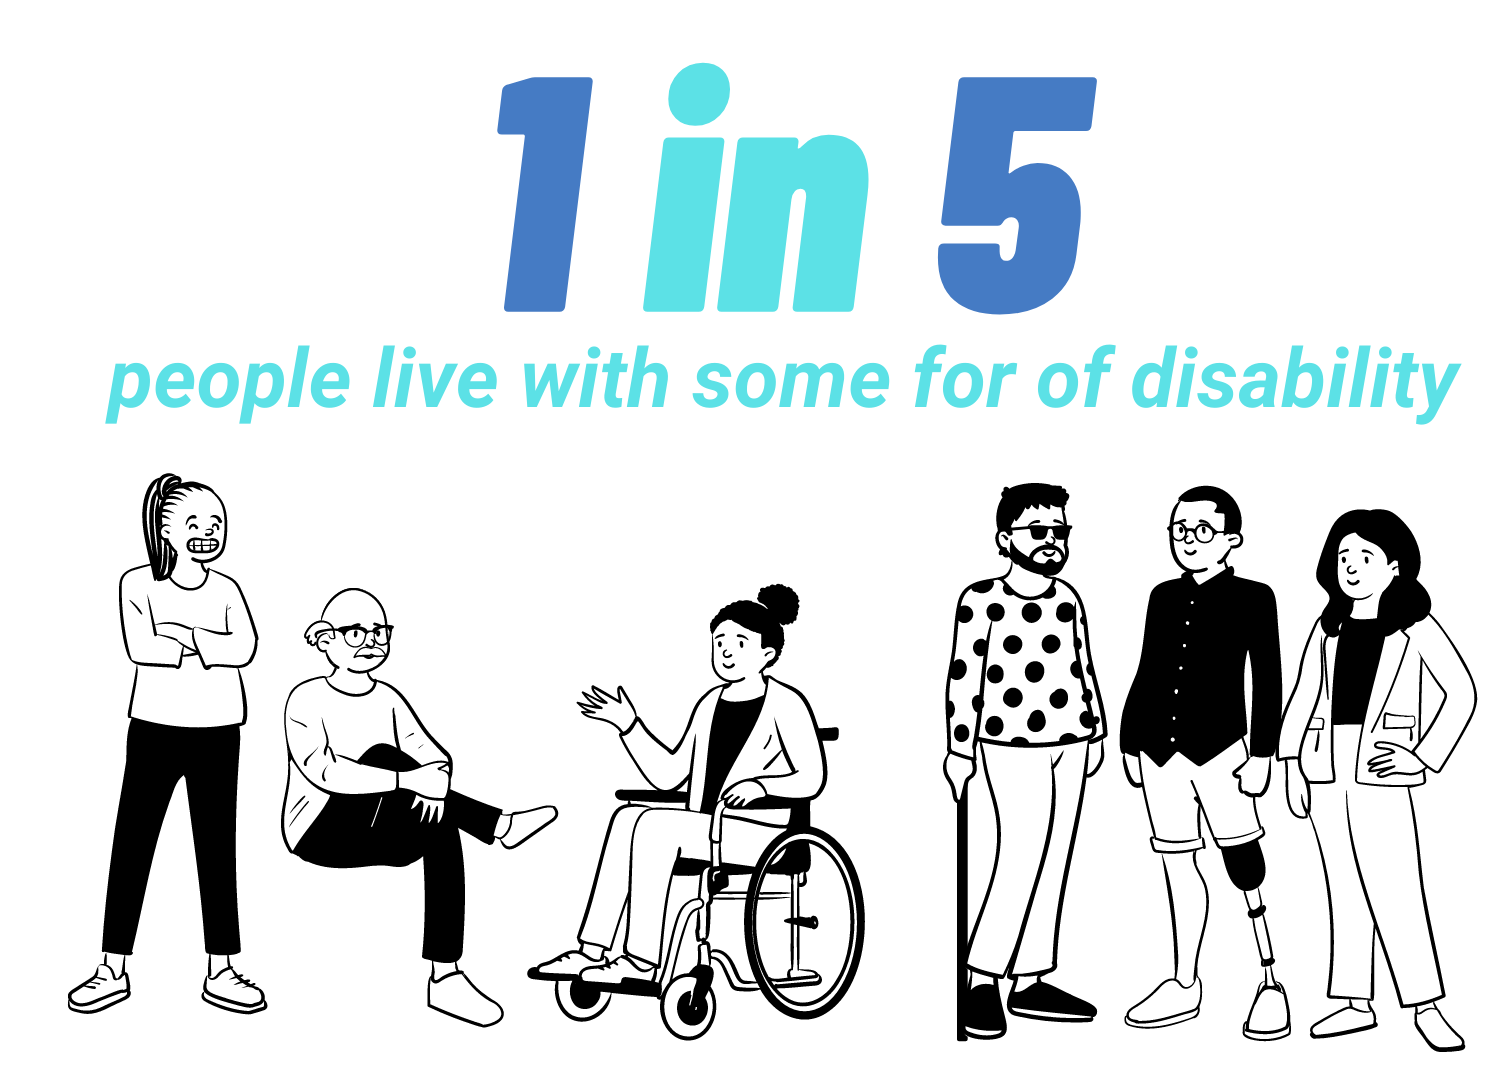 1 in 5 people live with some for of disability